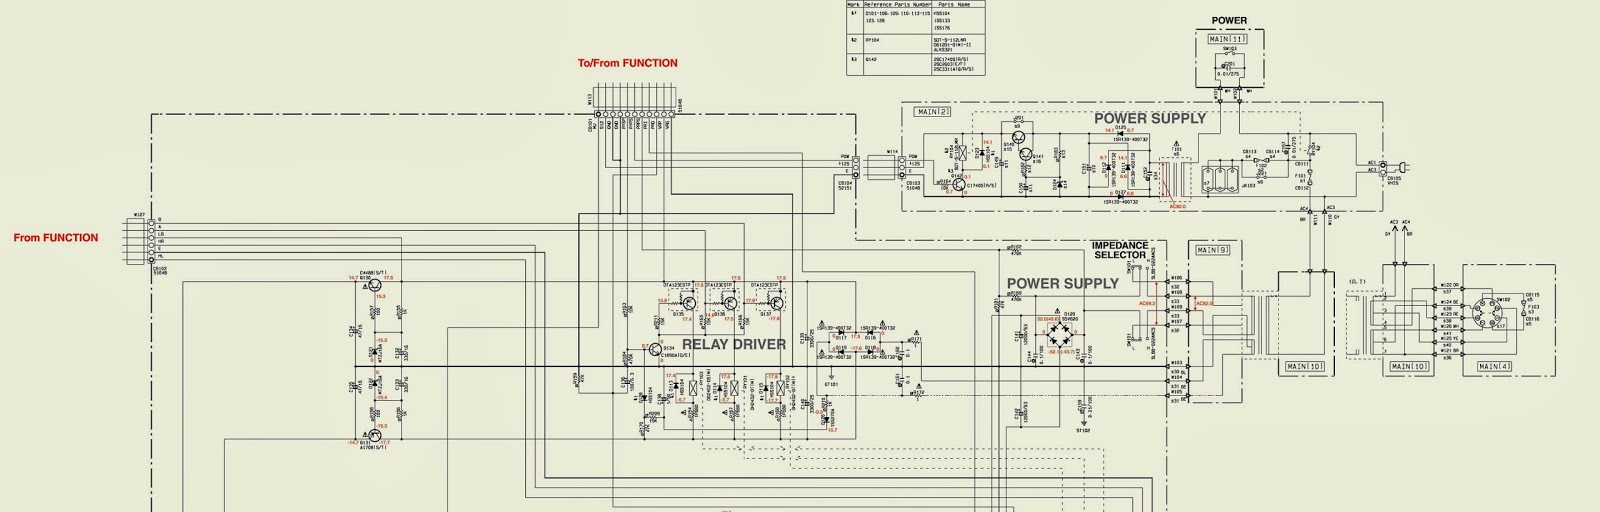 YAMAHA AX 596 POWER amp AMP SCHEMATIC Circuit Diagram